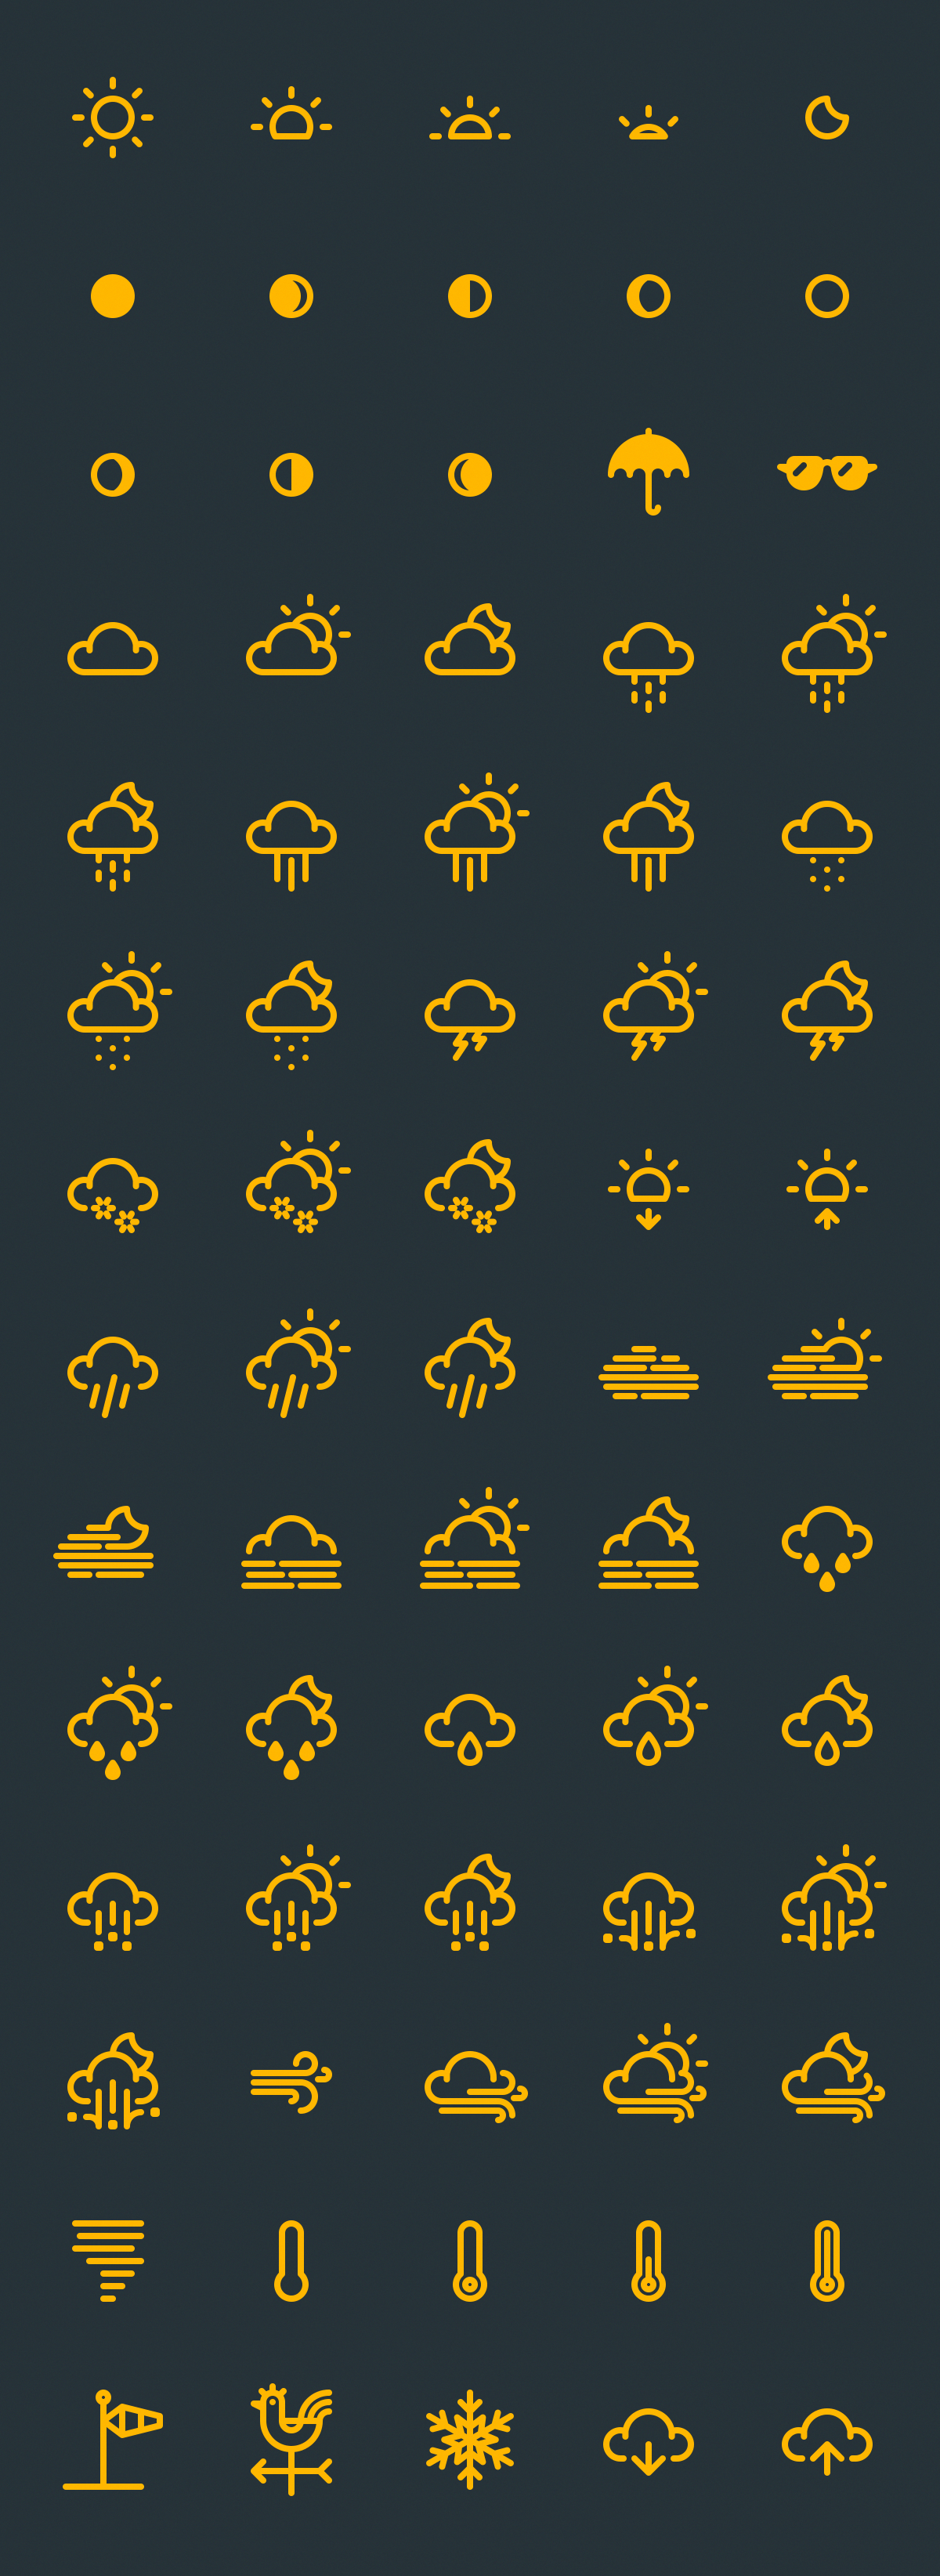 Free weather vector icons designawebsite new race u game concepts